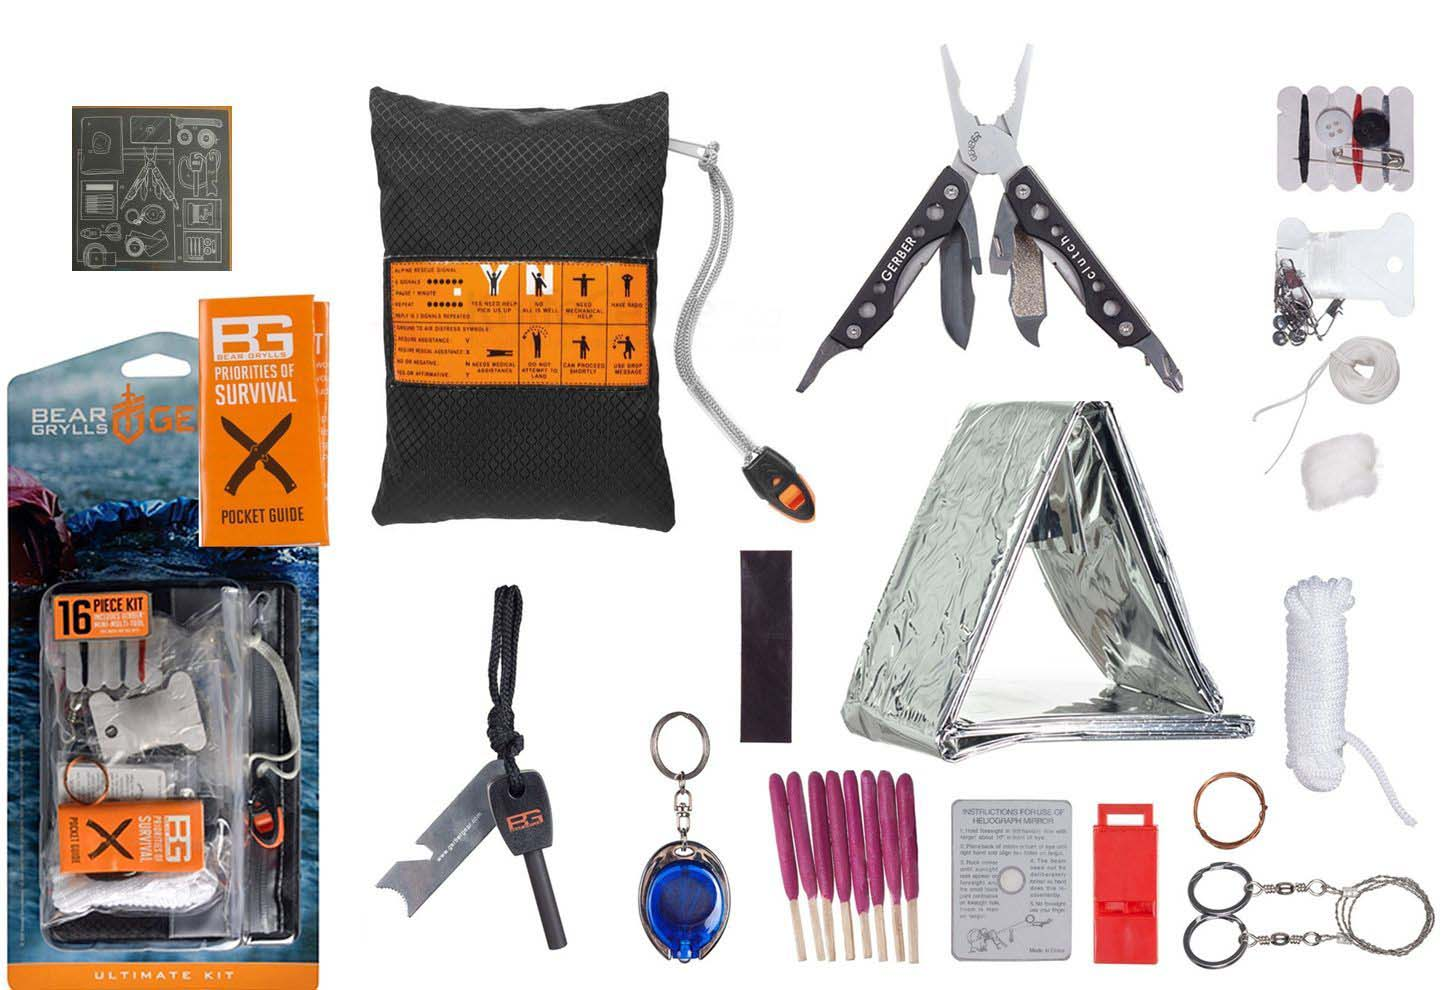 Набор для выживания Gerber Bear Grylls Ultimate Survival Kit